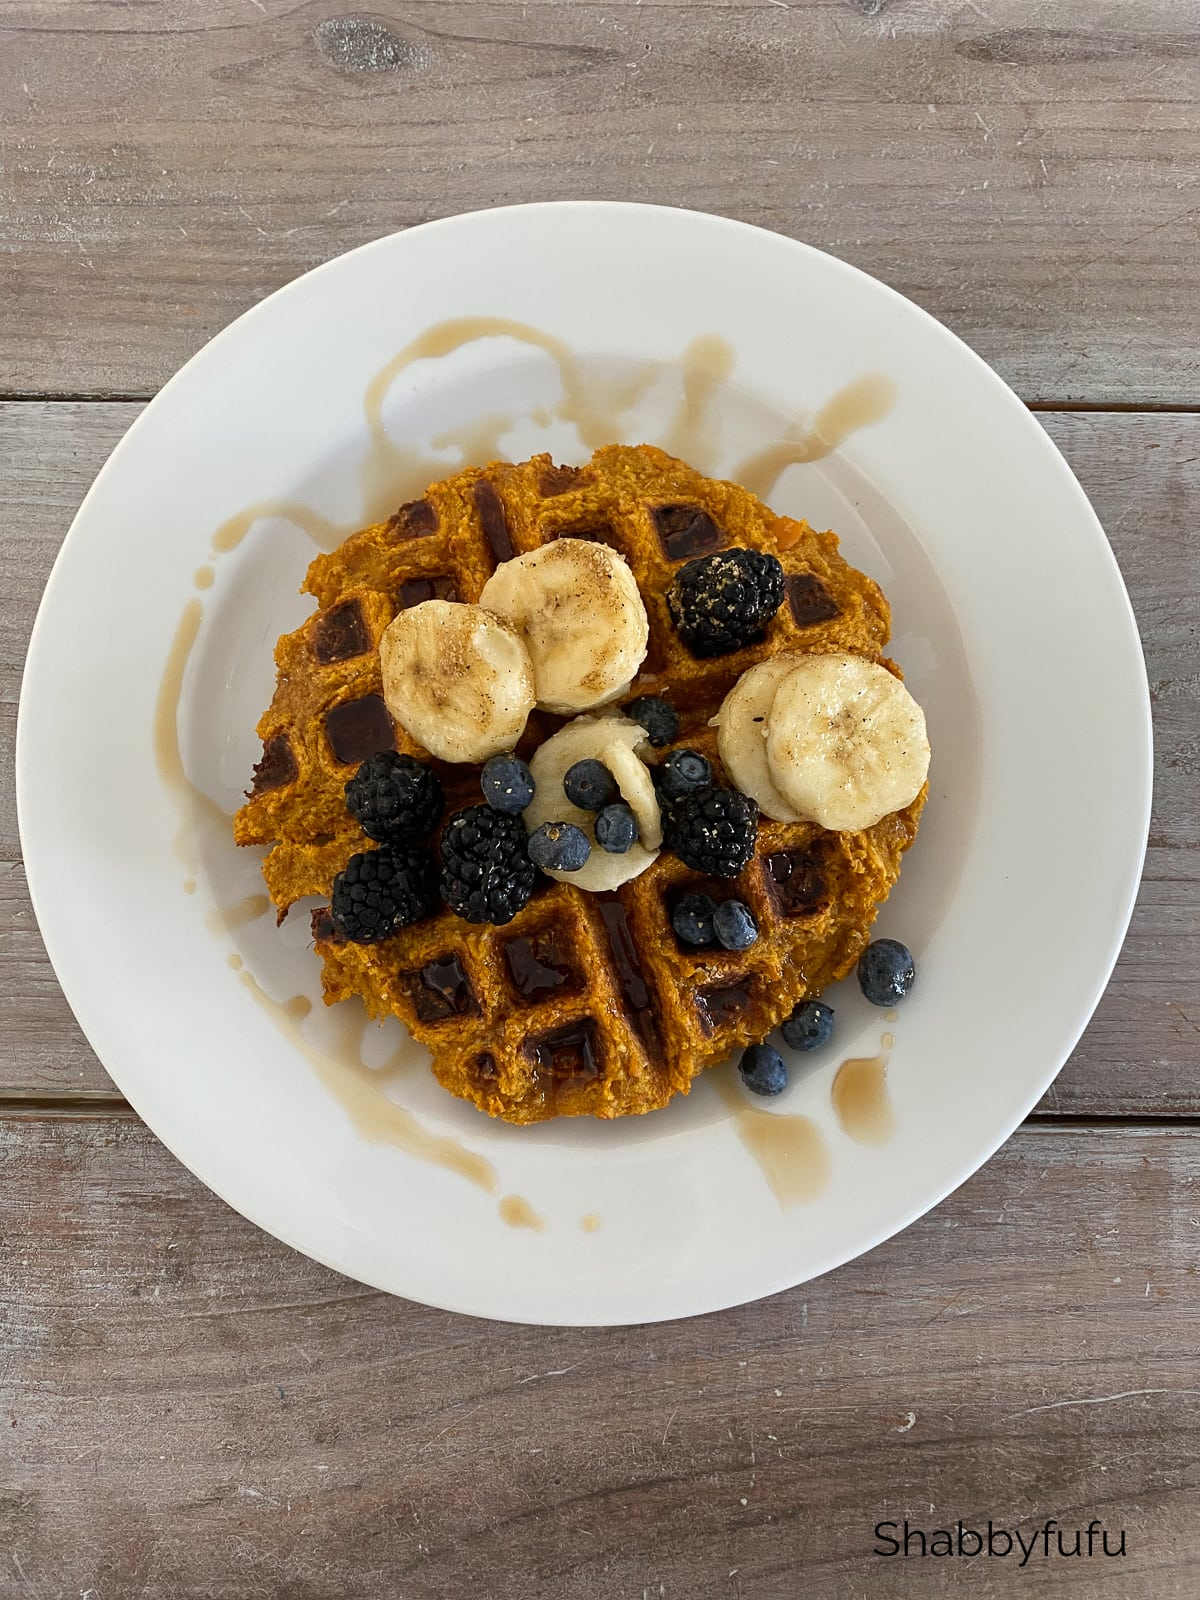 Super healthy vegan waffle with fruit!